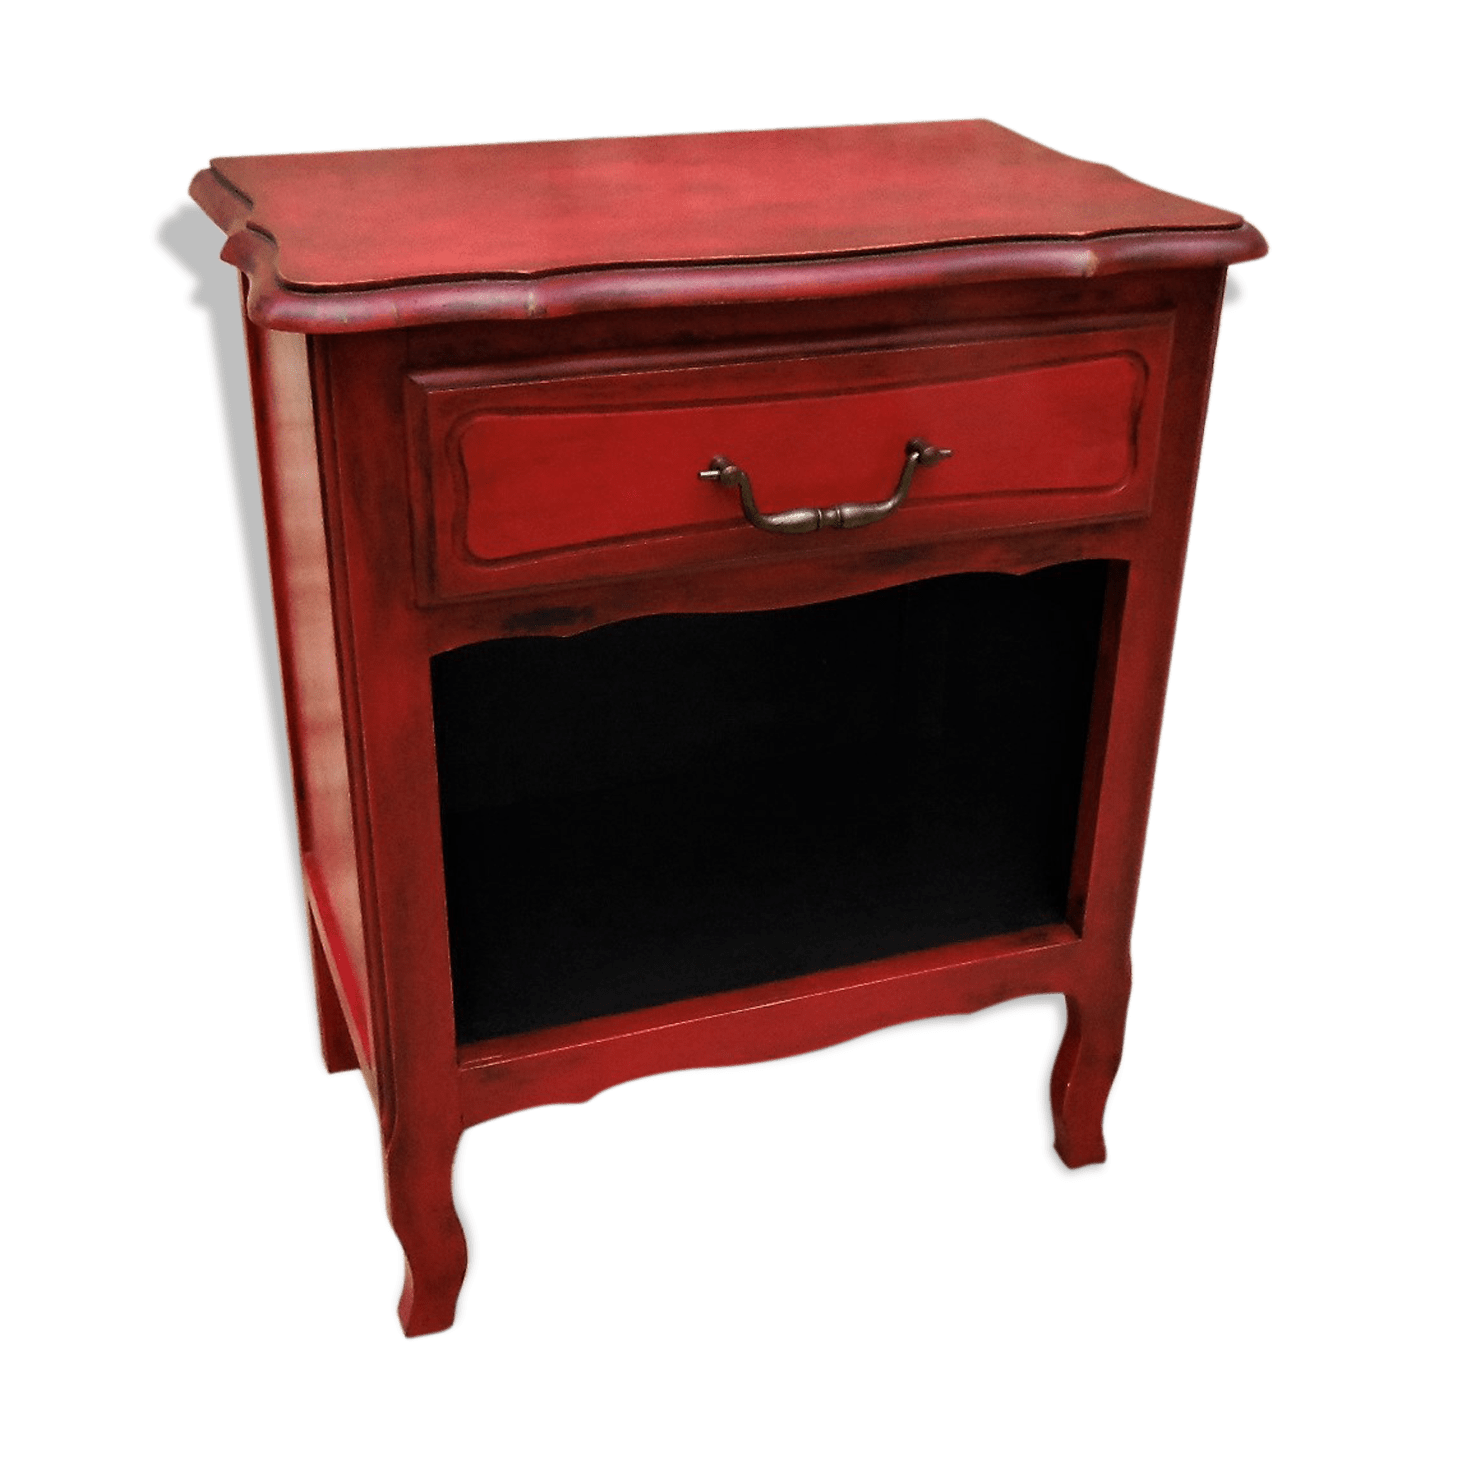 Chevet Rouge Table De Chevet Rouge Awesome Chevet Duasie Couleur Rouge